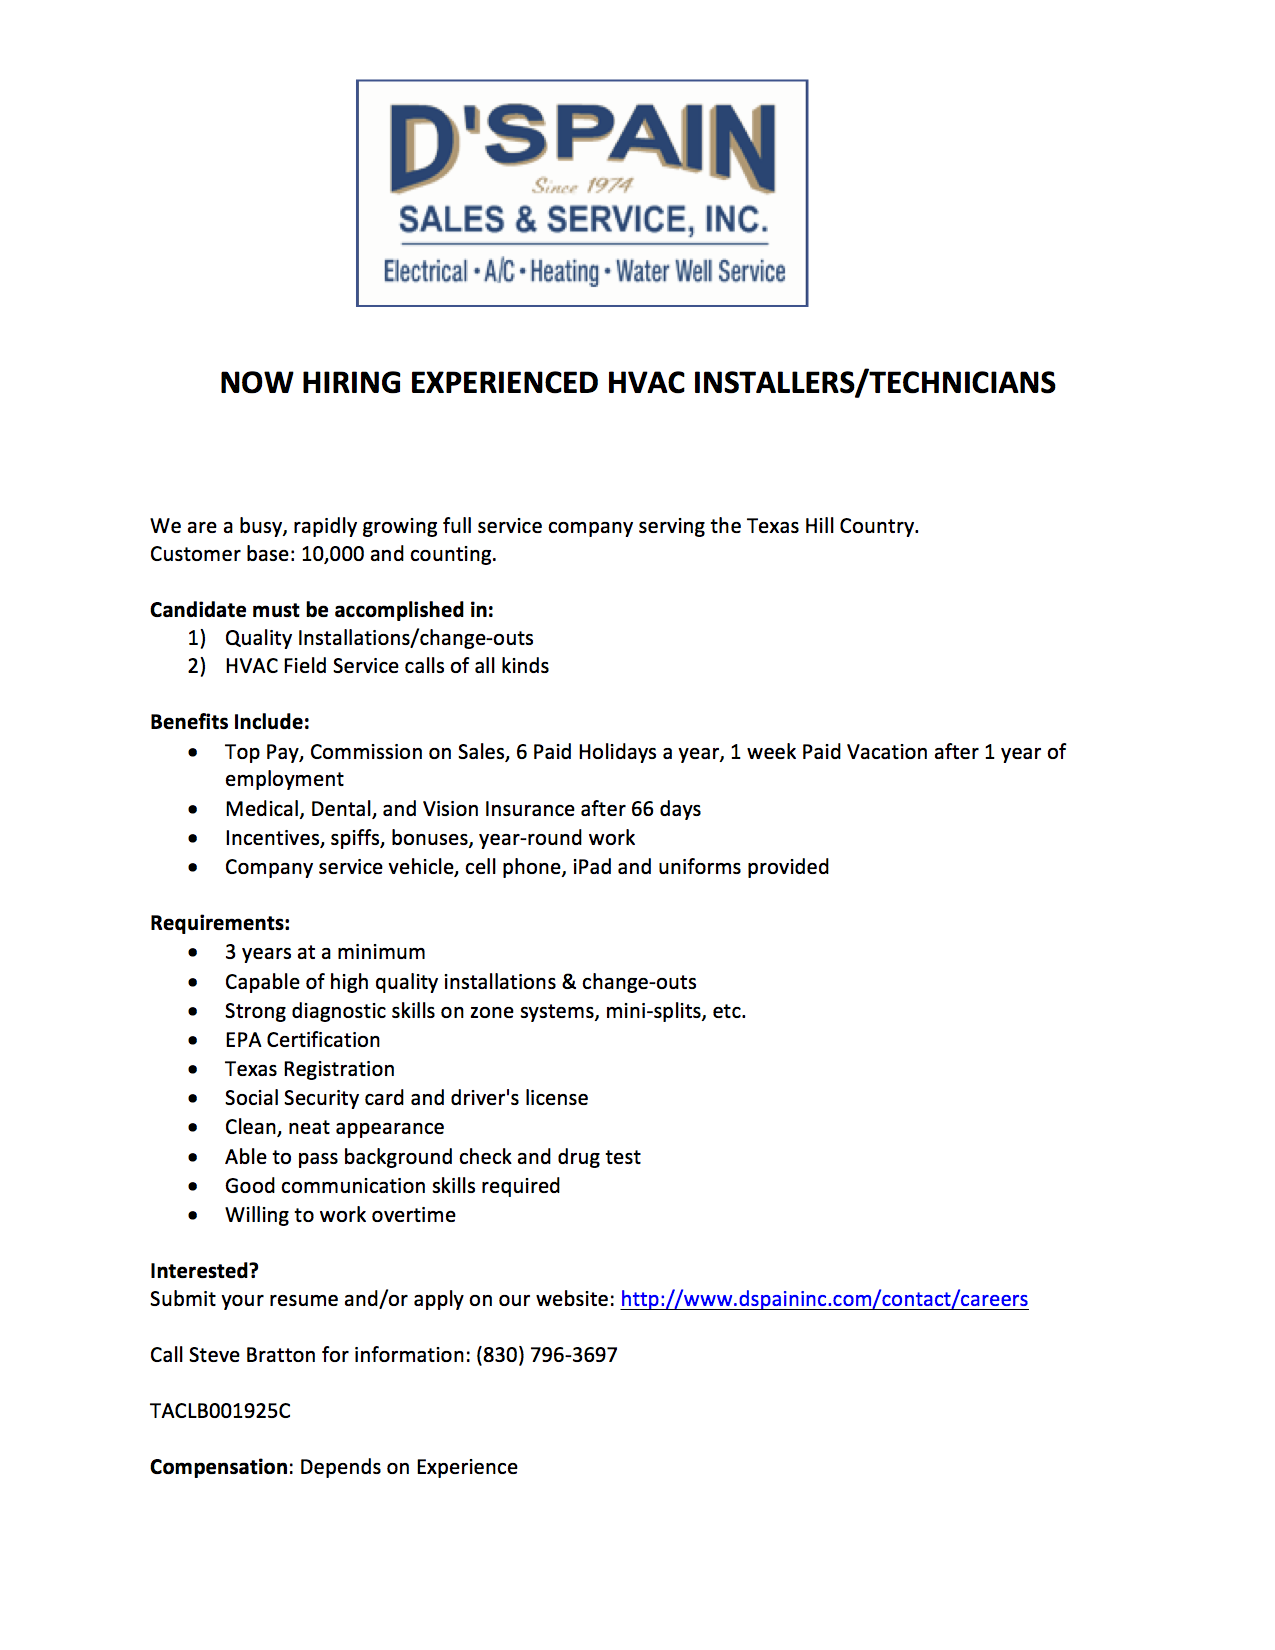 Boerne Tx Hvac Careers Dspain Sales Service Inc